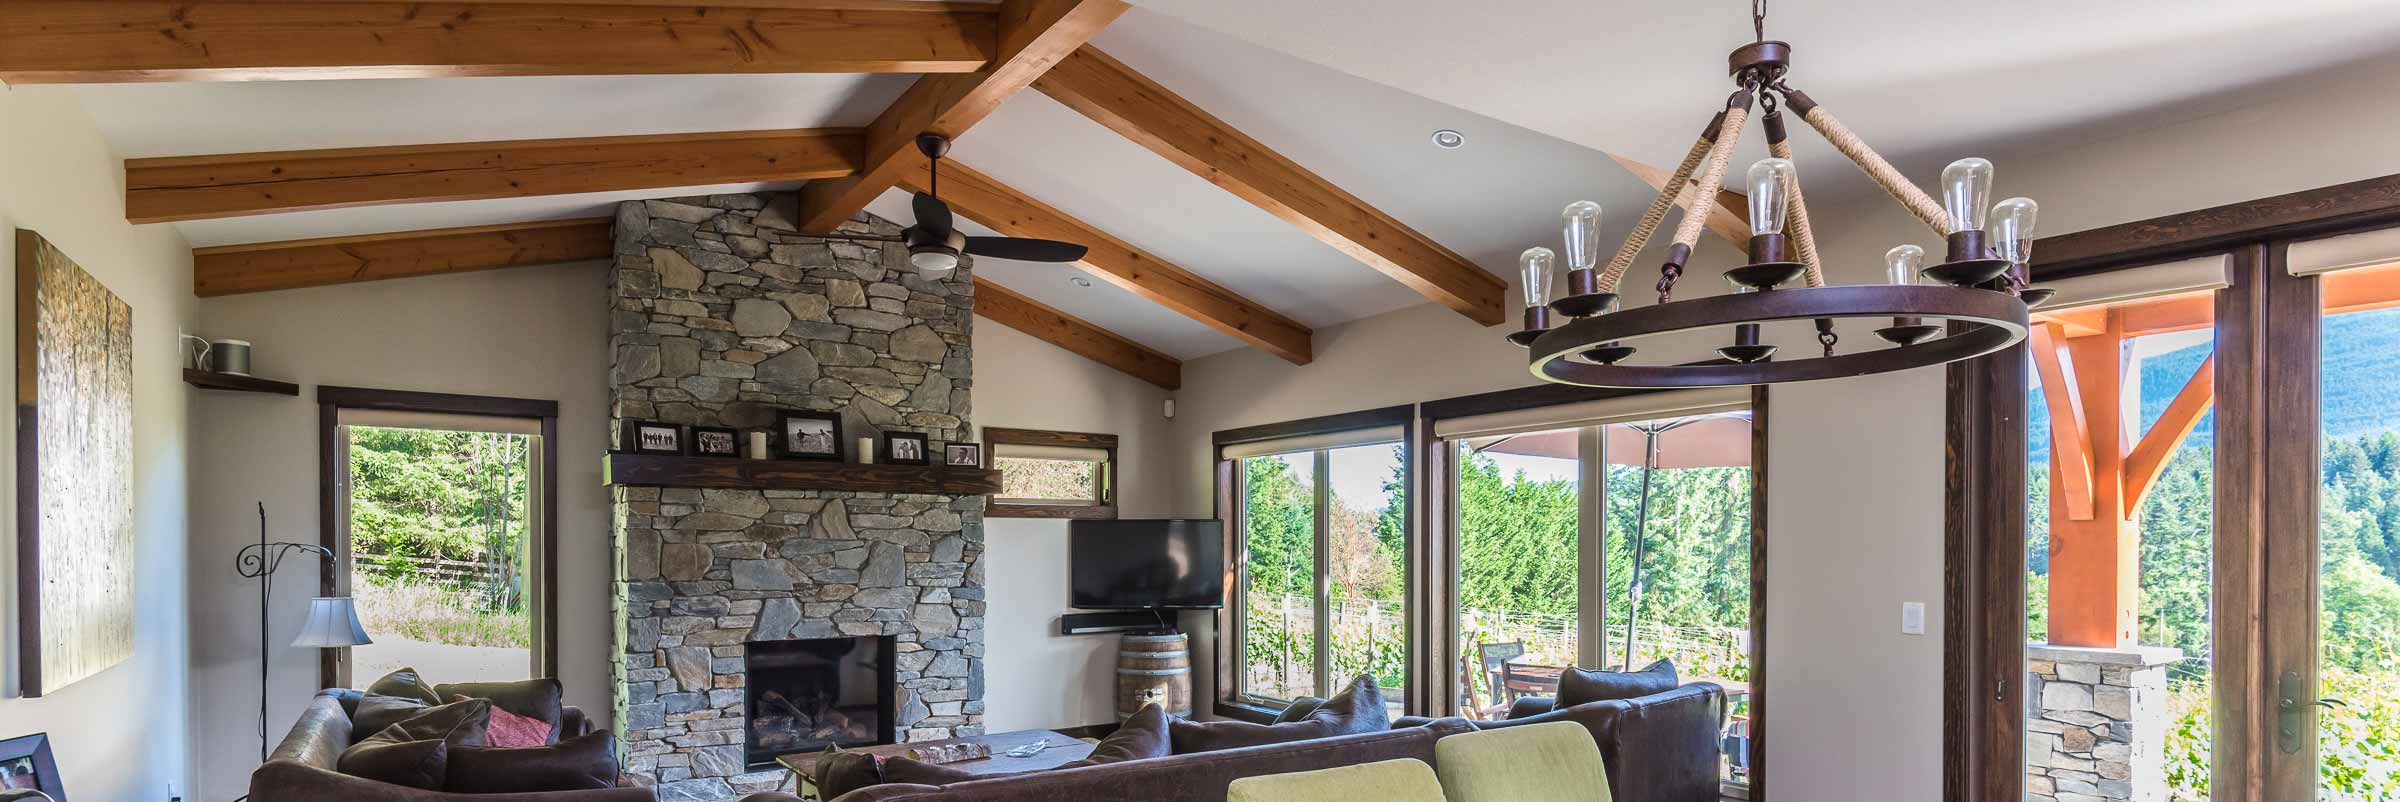 Enjoy A West Coast Timberframe Look On A Modest Budget